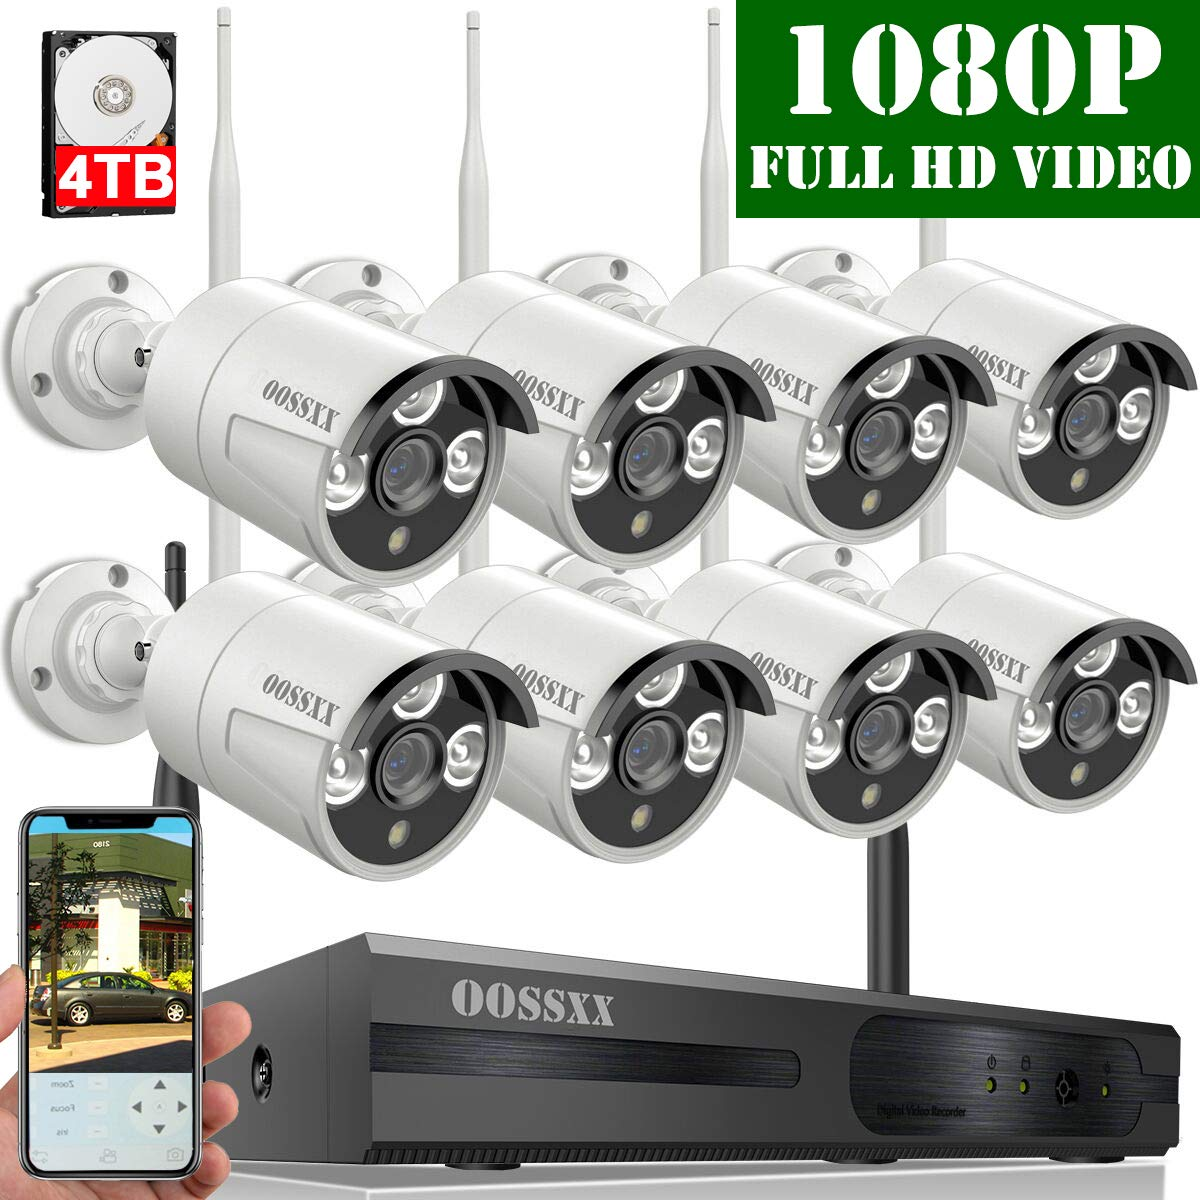 【2019 Update】 OOSSXX 8-Channel HD 1080P Outdoor Wireless Security Camera System,8Pcs 1080P 2.0 Megapixel Wireless Indoor/Outdoor IR Bullet IP Cameras,P2P,App, HDMI Cord & 4TB Hard Drive